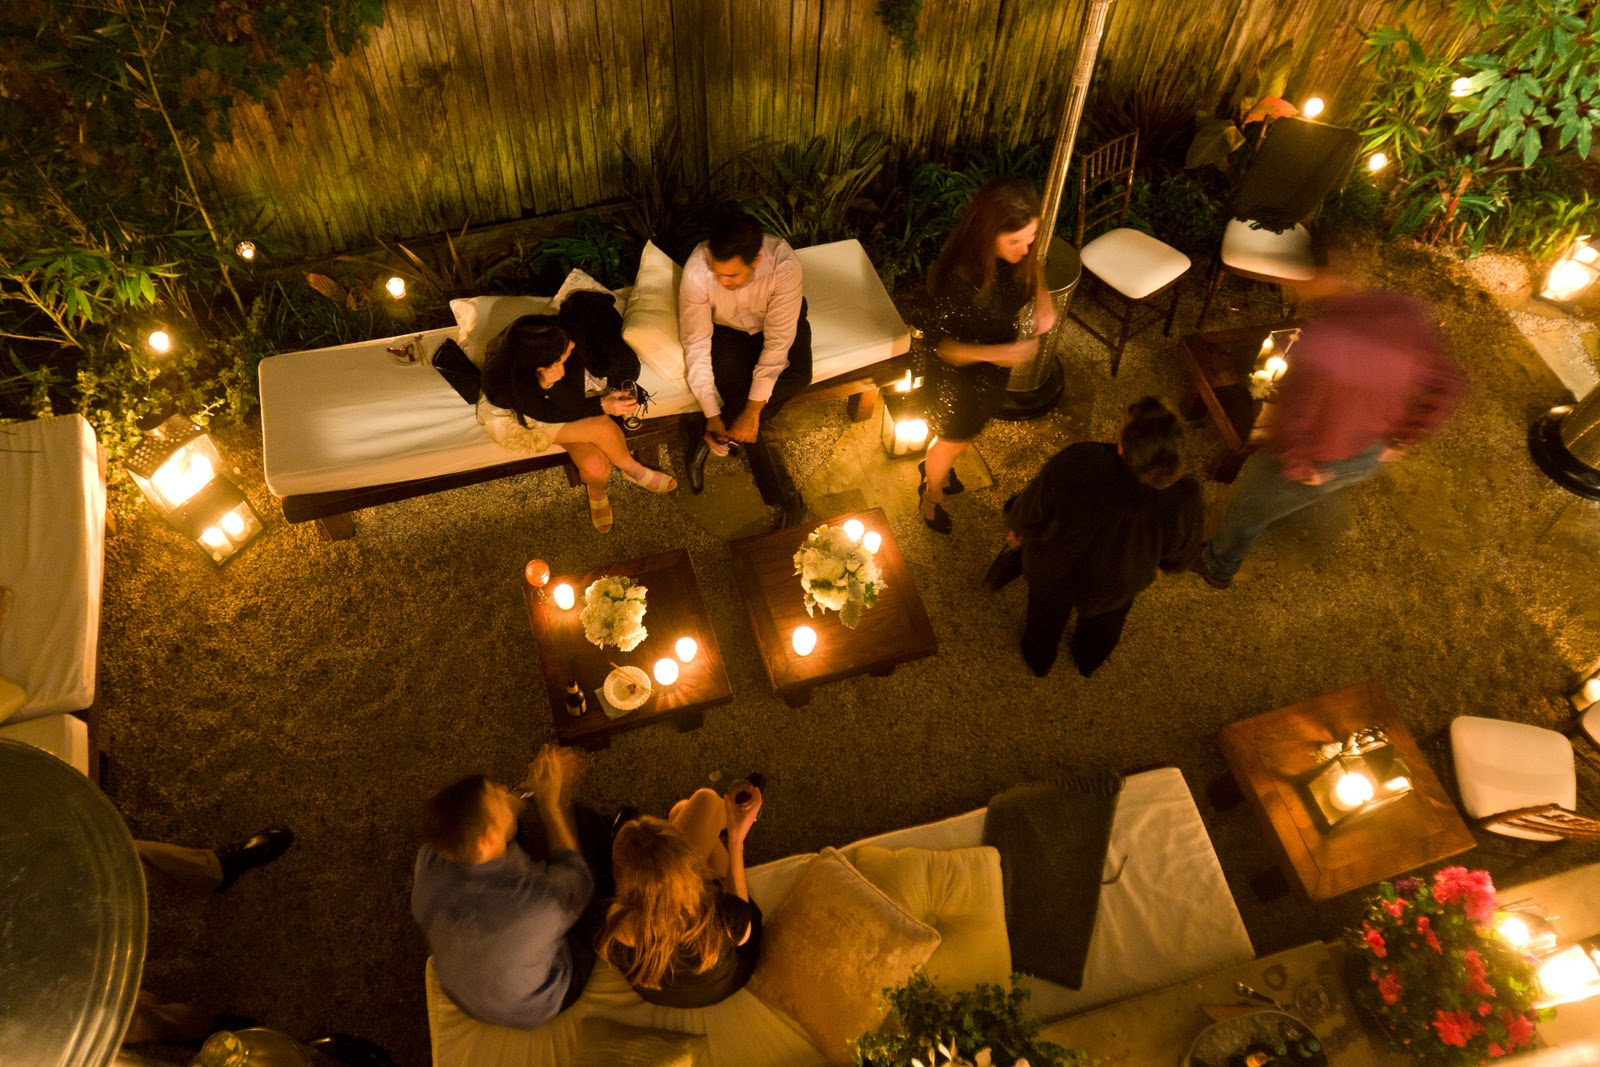 outdoor seating area with candles, flowers and people